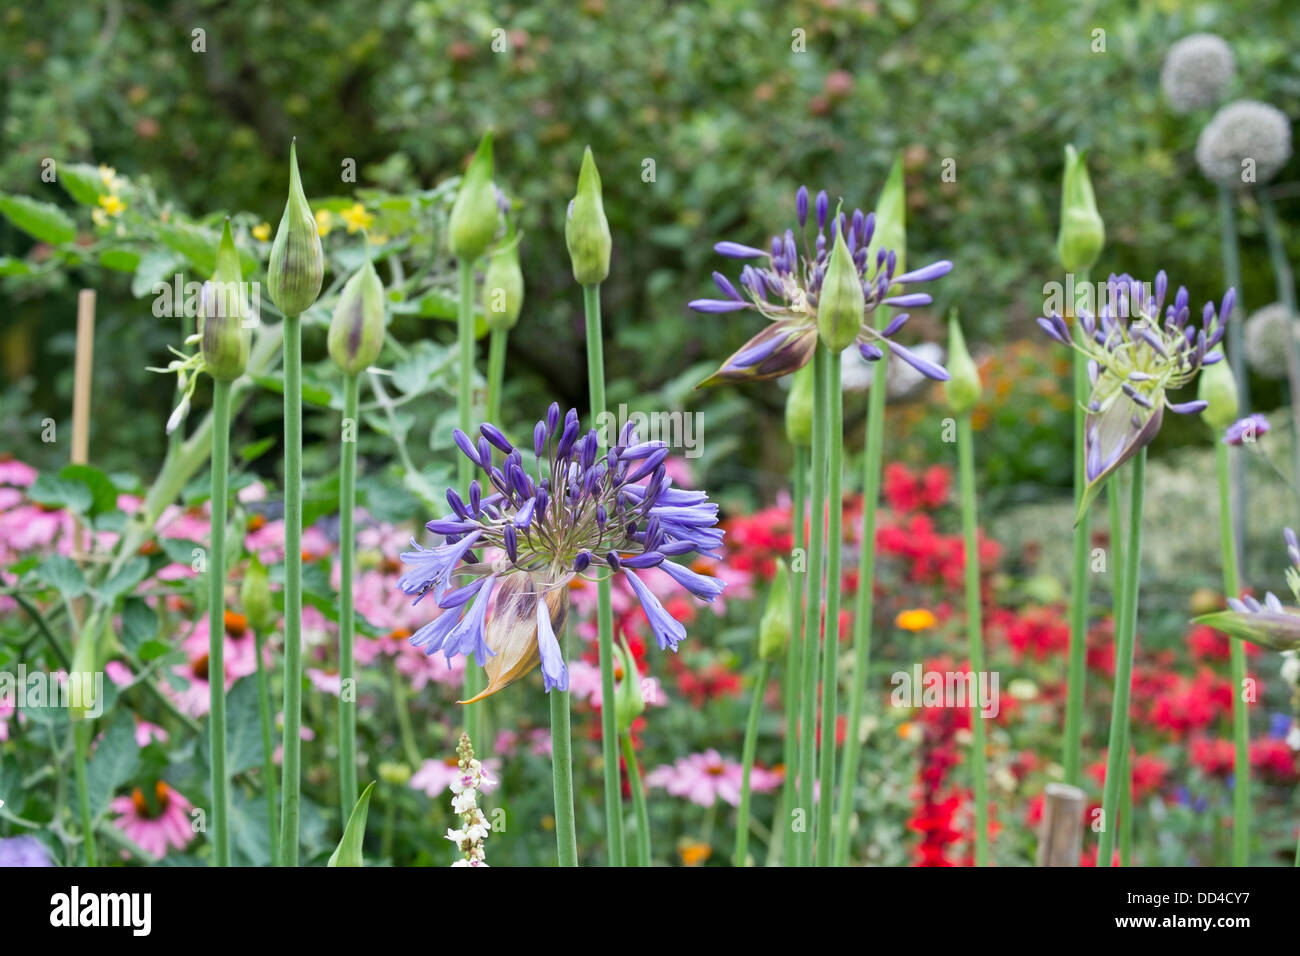 Agapanthus and ornamental alliums coming onto flower. - Stock Image